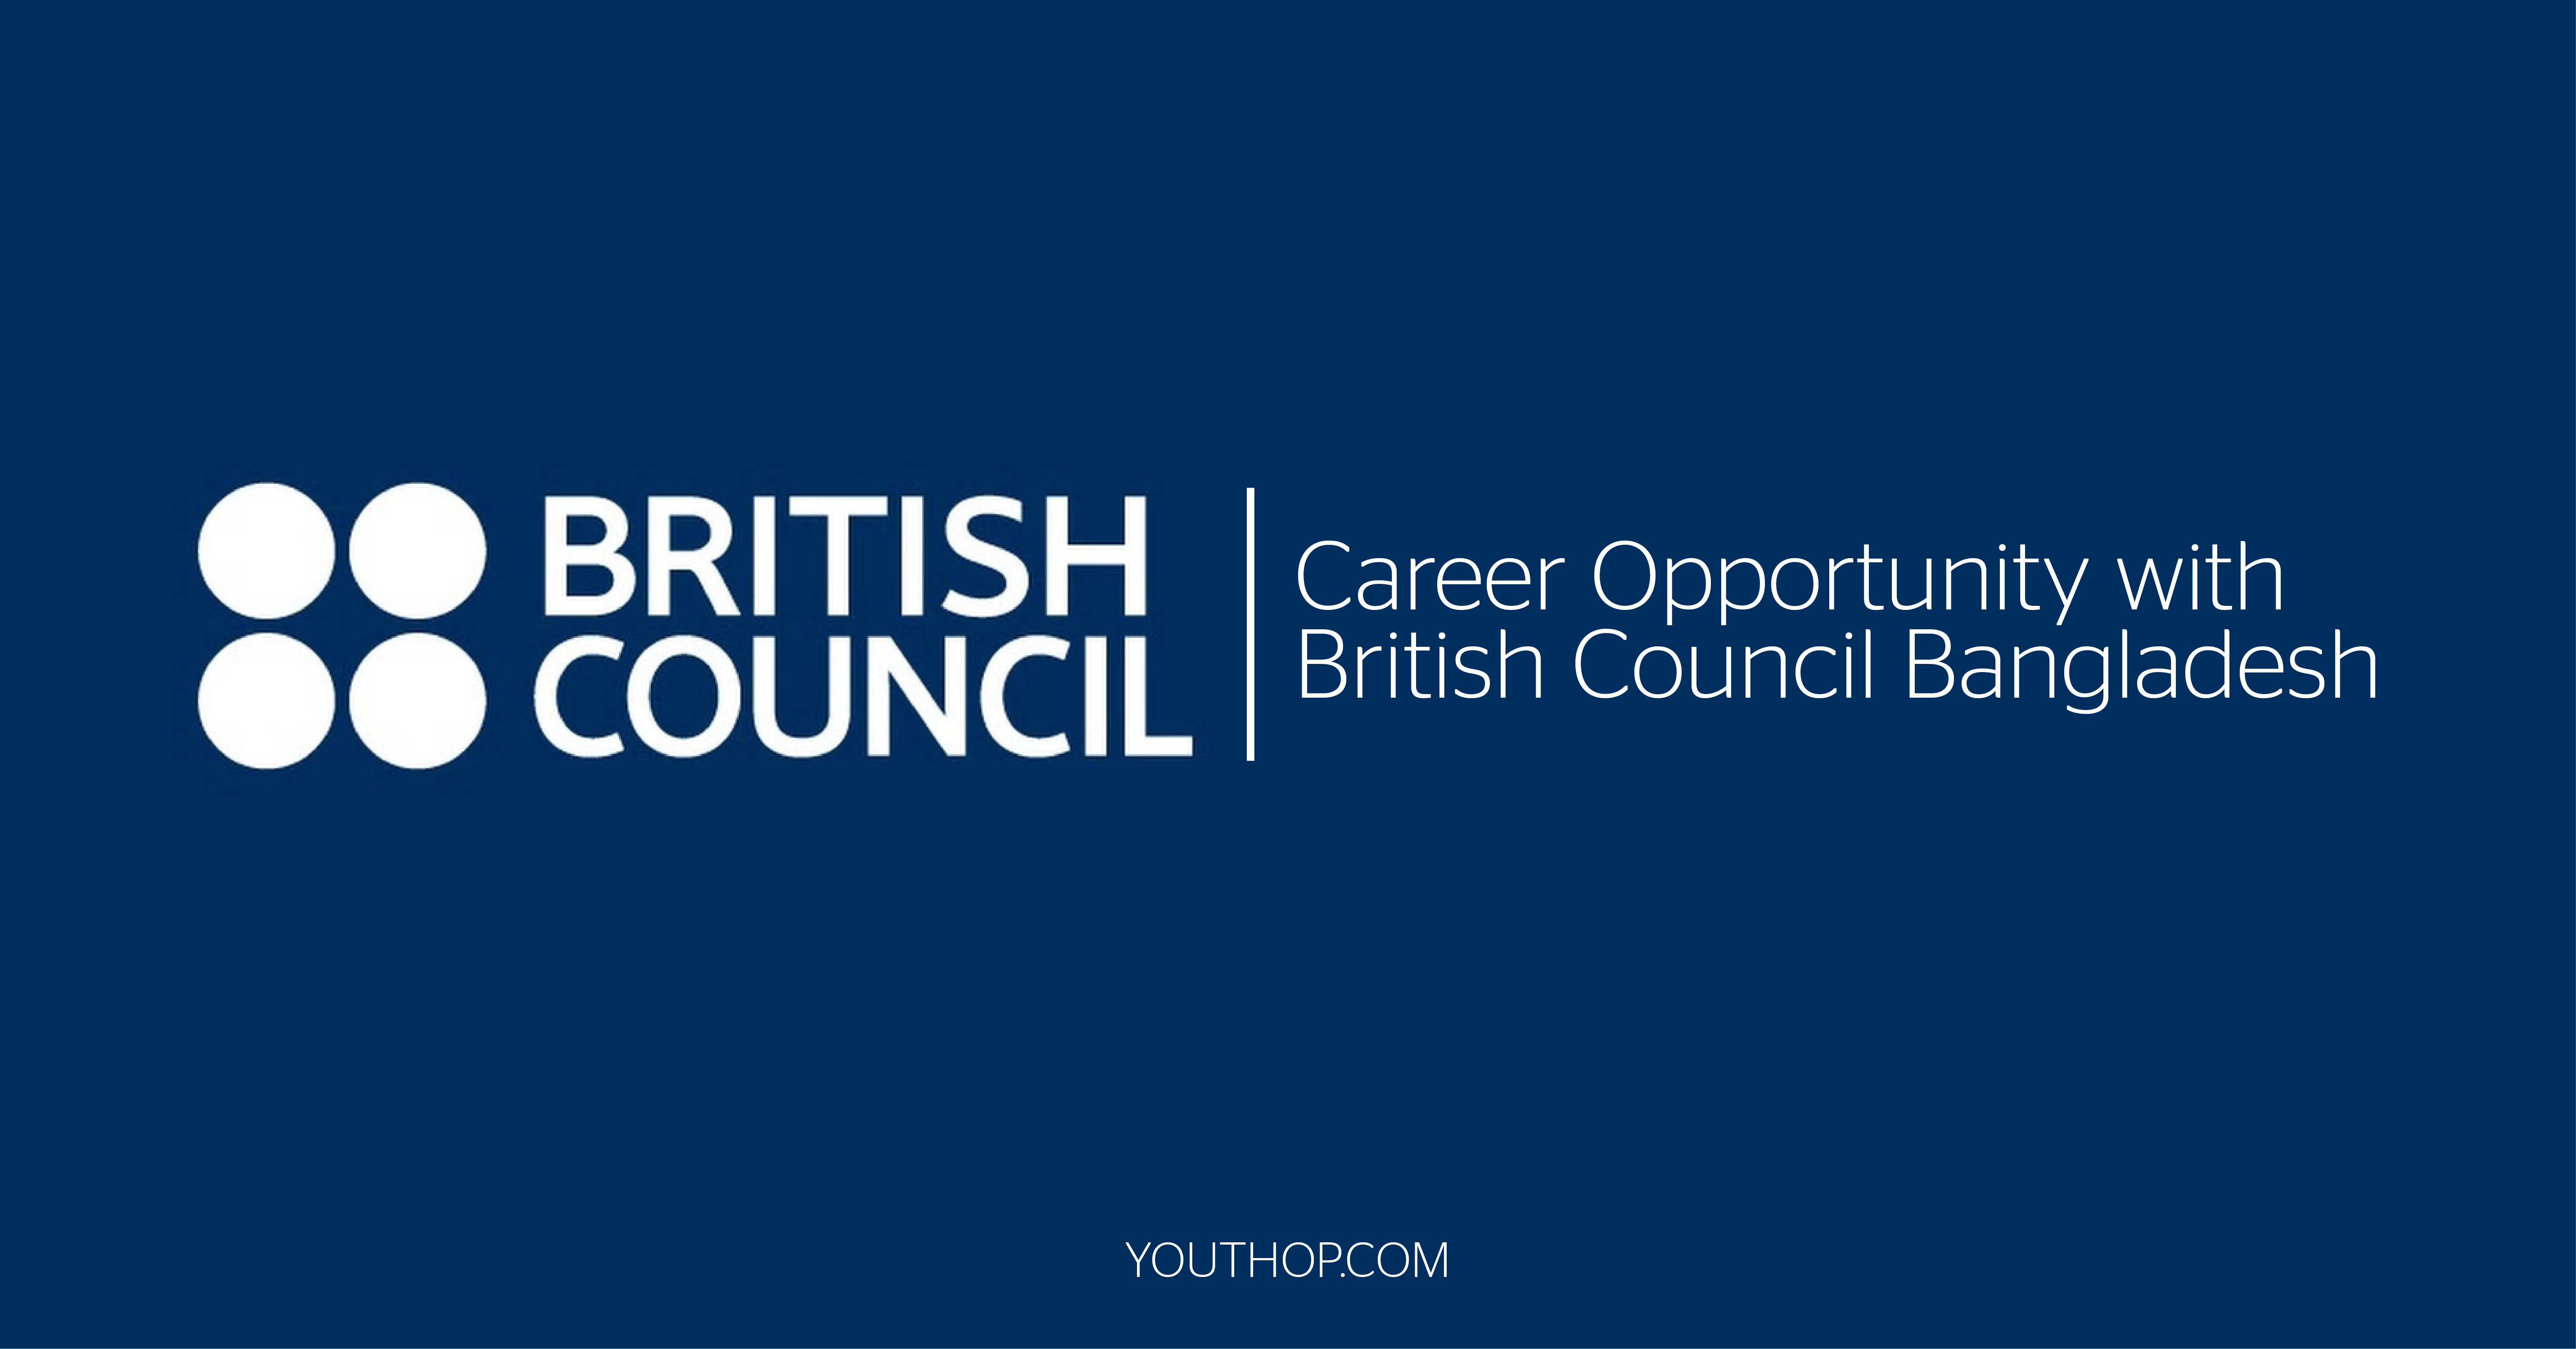 Career Opportunity With British Council Bangladesh